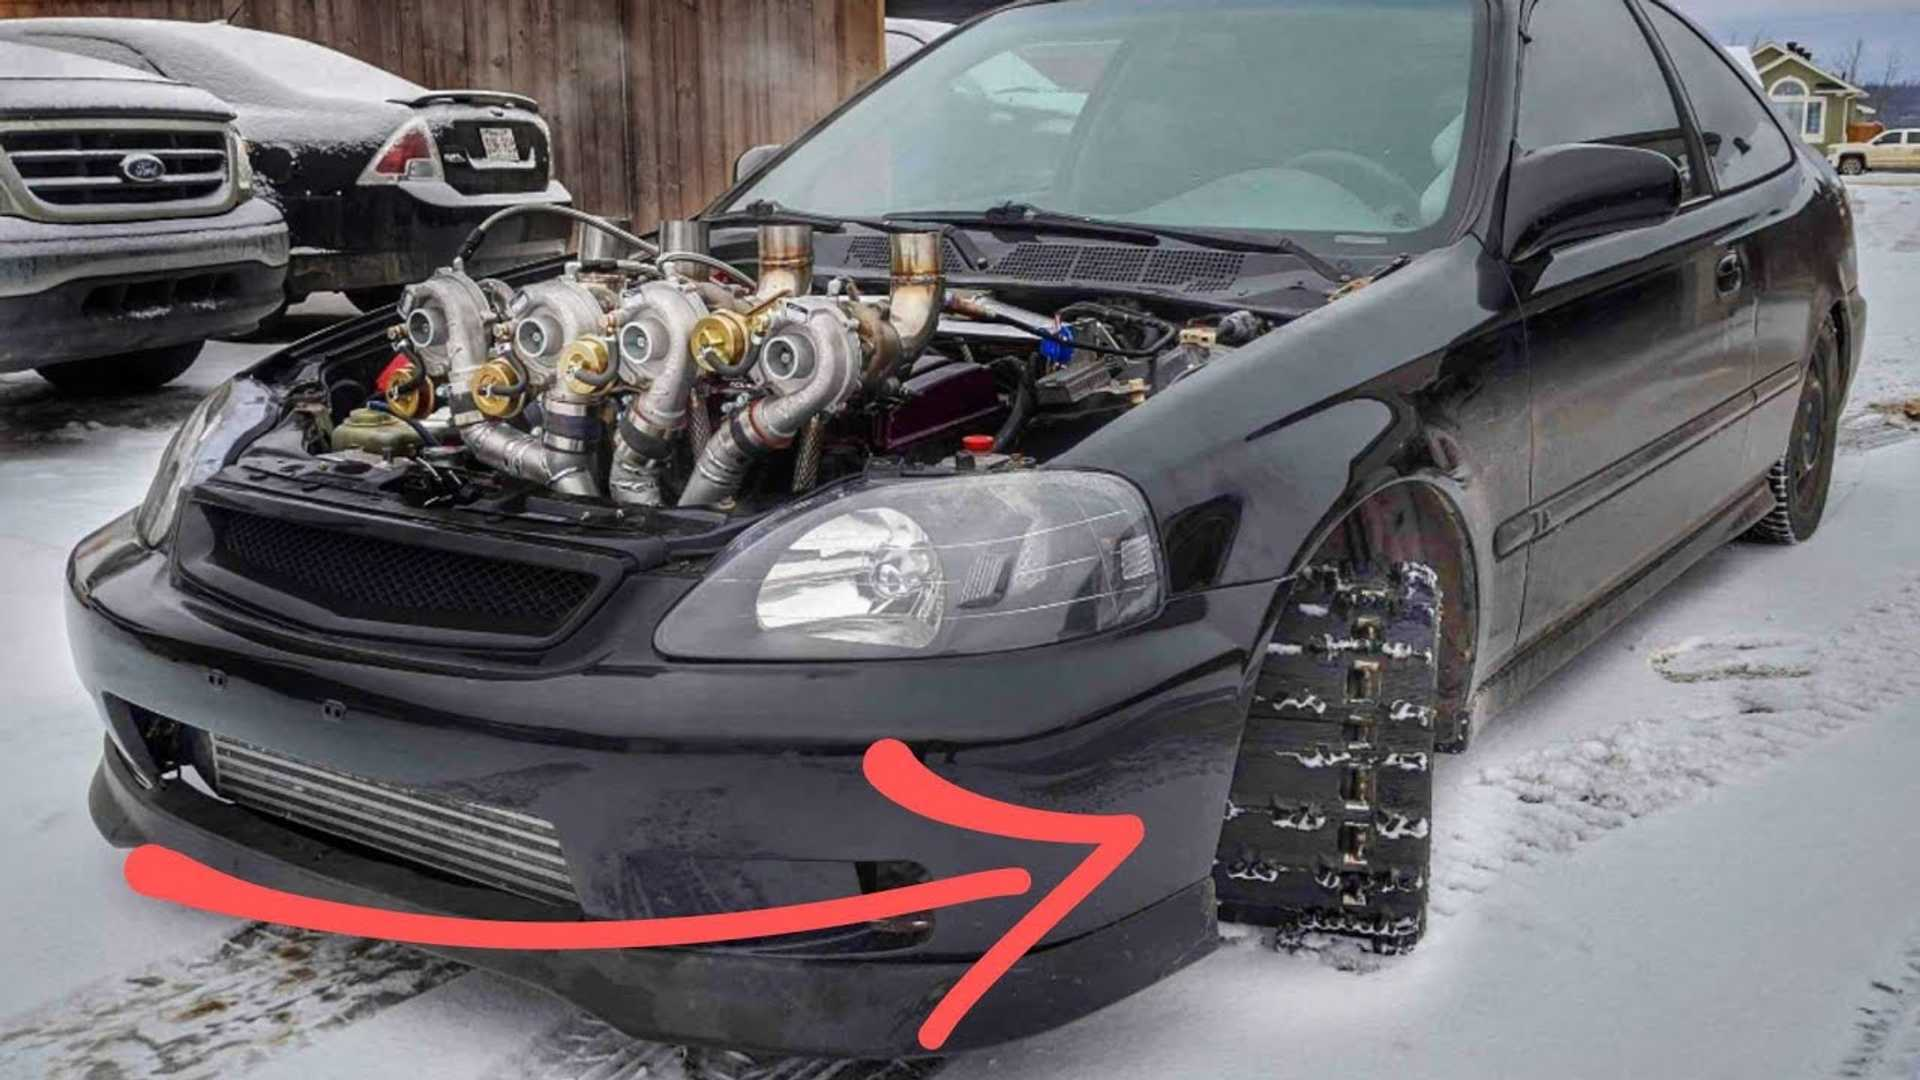 Bonkers Honda Civic Goes Anywhere With Four Turbos and Tank Tracks